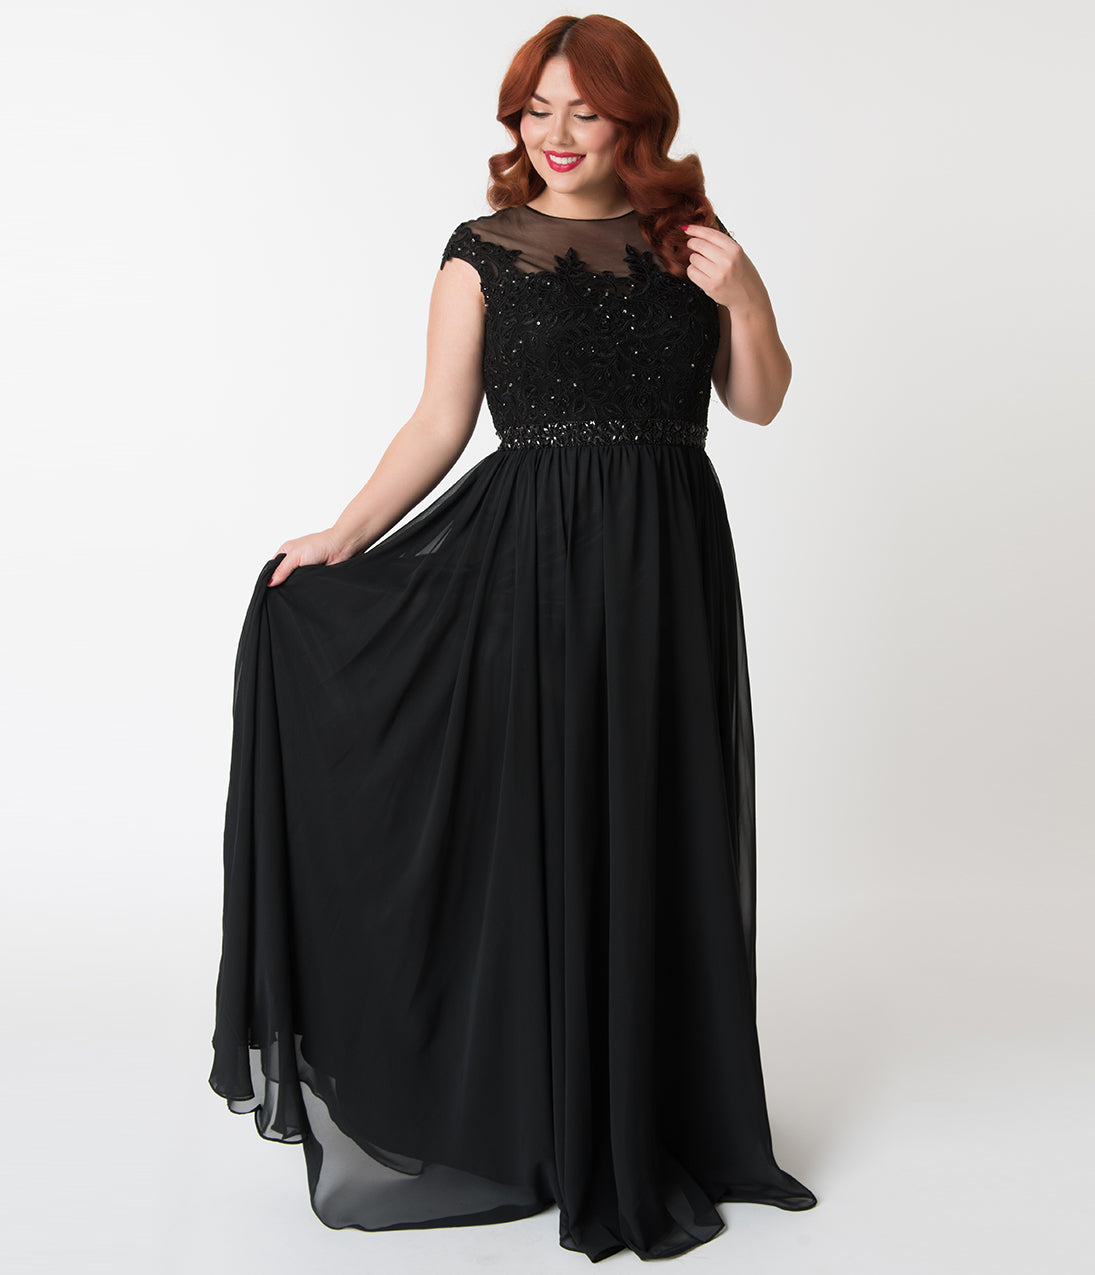 1930s Evening Dresses | Old Hollywood Dress Plus Size Black Embellished Lace  Chiffon Cap Sleeve Prom Gown $142.00 AT vintagedancer.com